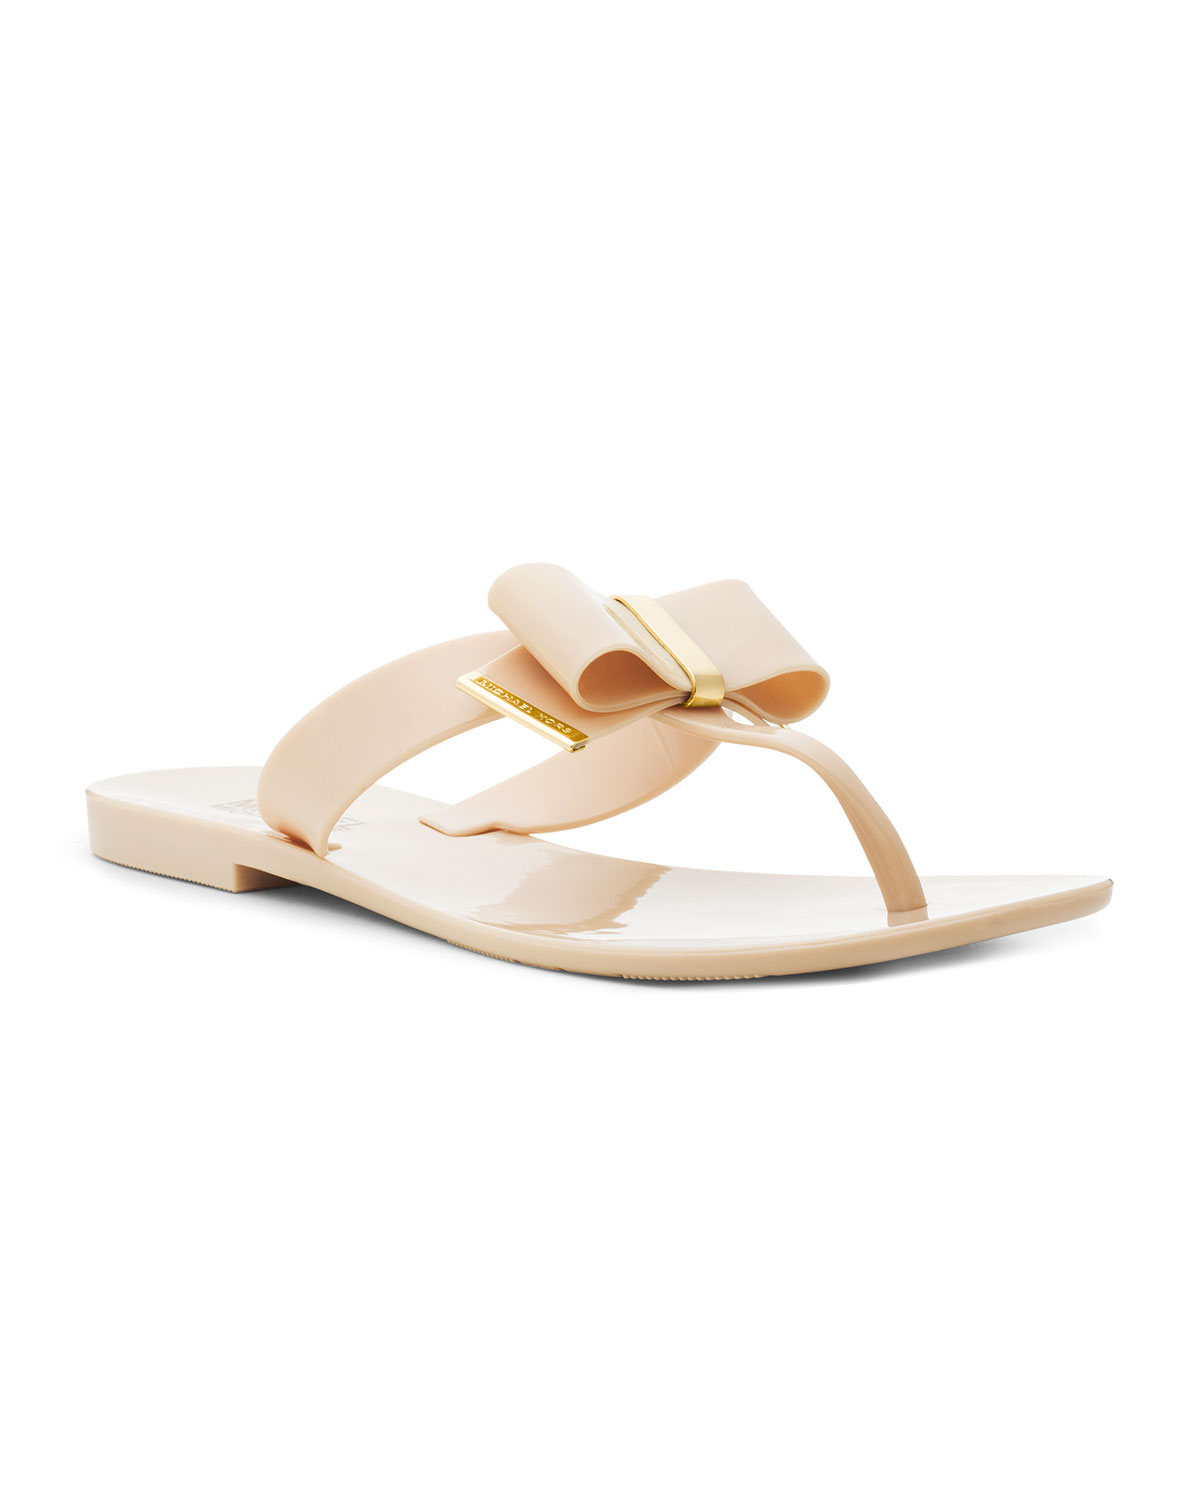 5bd0615a237 Lyst - Michael Kors Kayden Jelly Thong in Natural